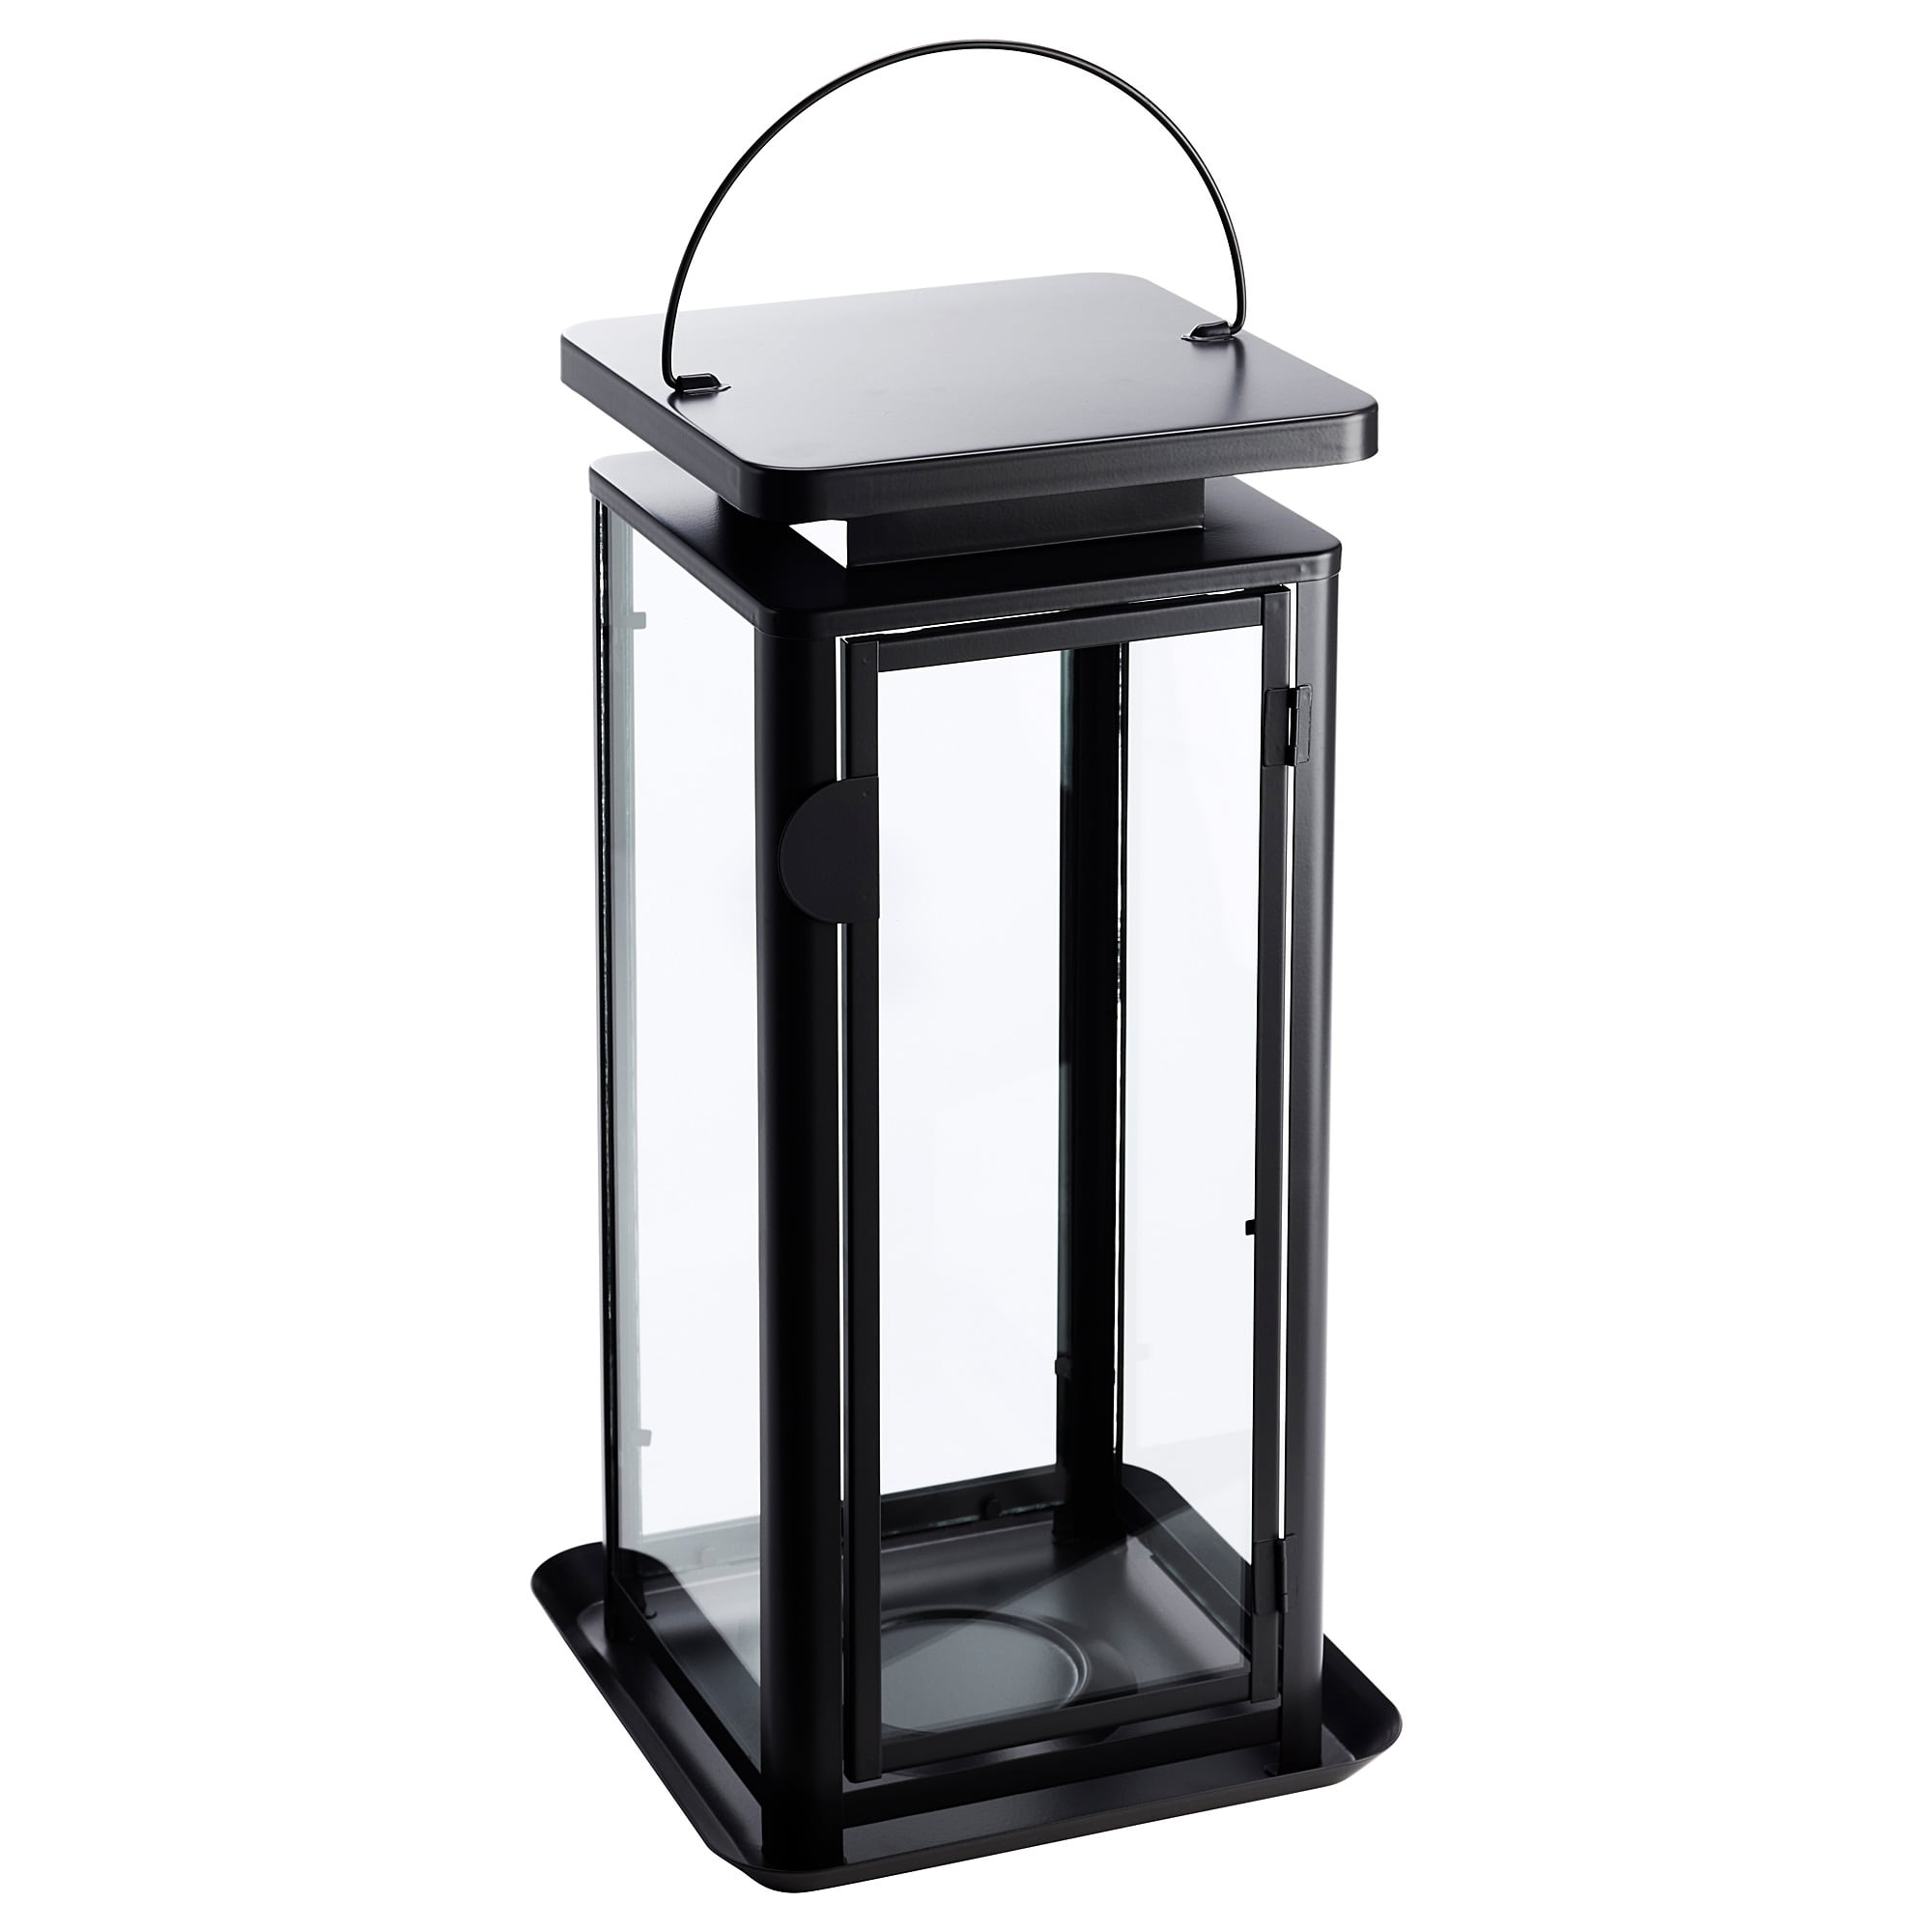 Sinnesro Lantern F Block Candle, In/outdoor Grey 45 Cm – Ikea For Latest Outdoor Grey Lanterns (View 18 of 20)